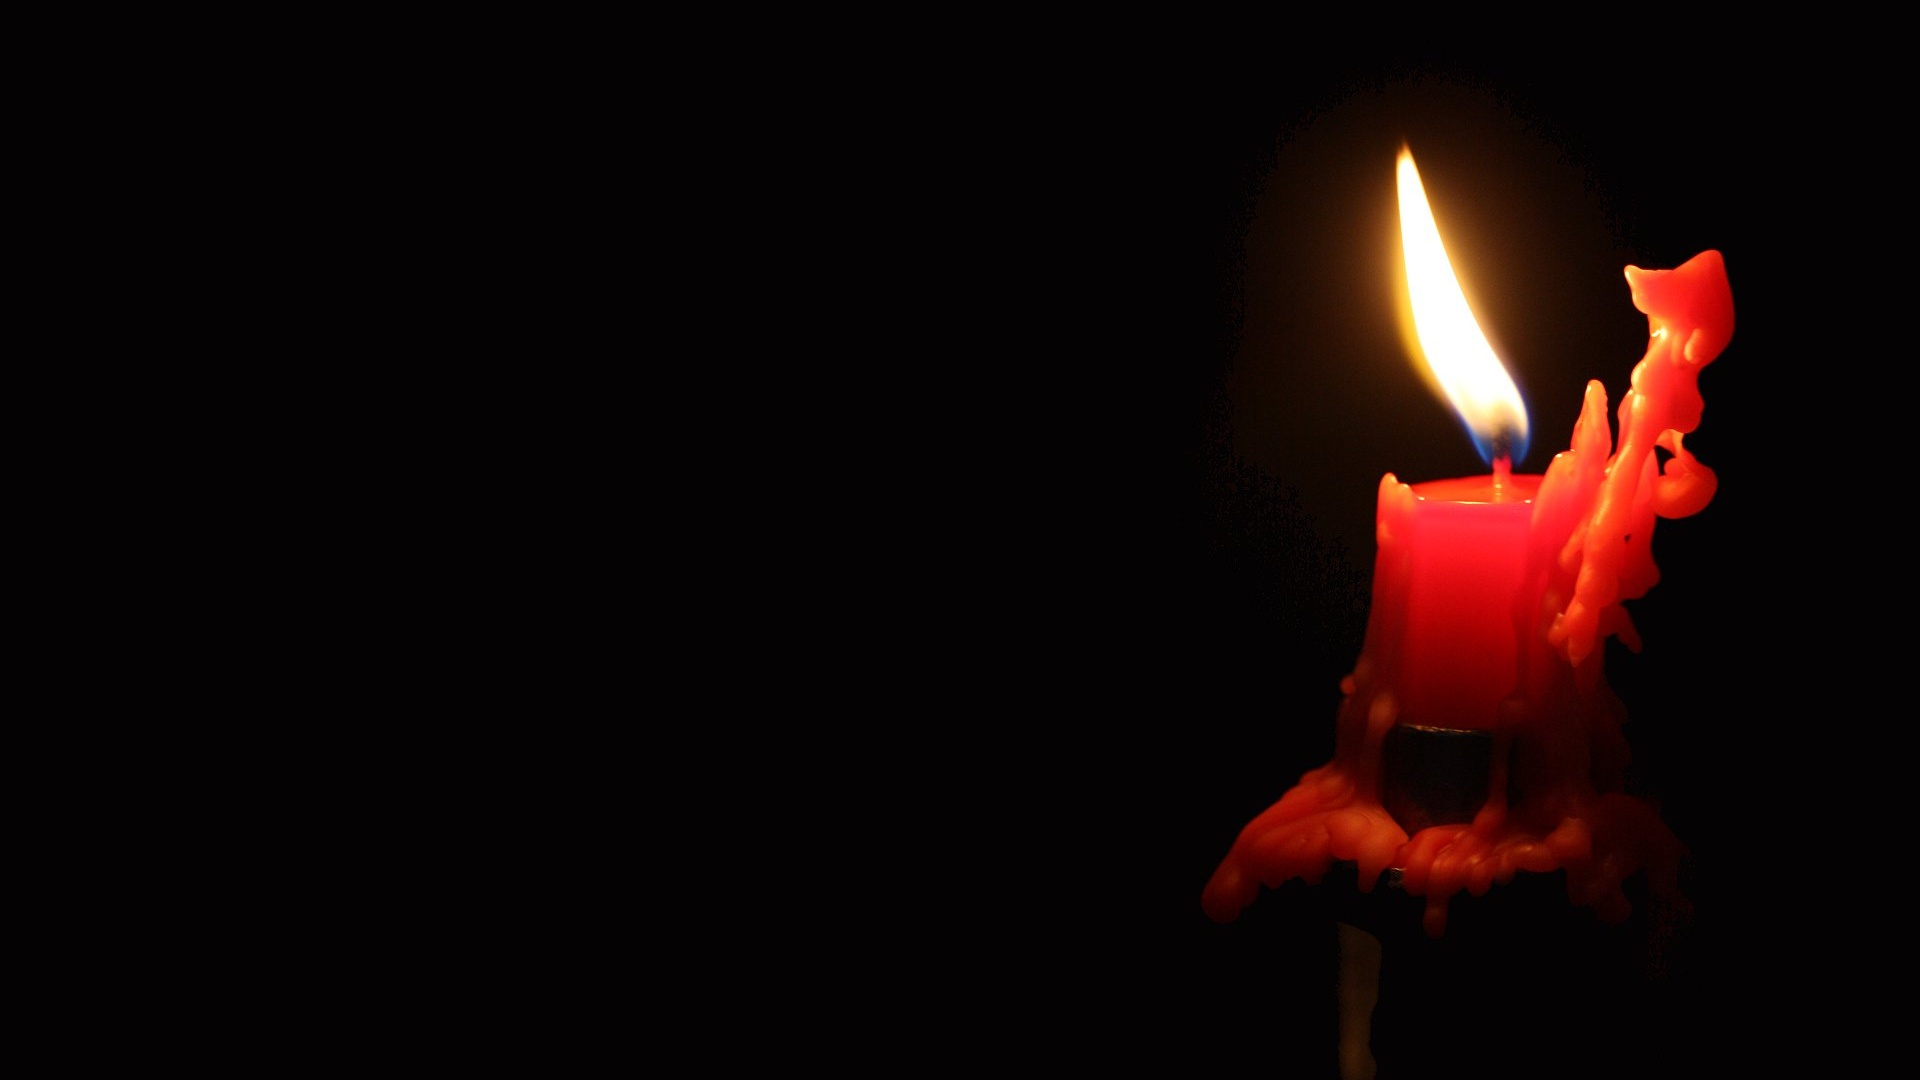 candle wallpaper 852447